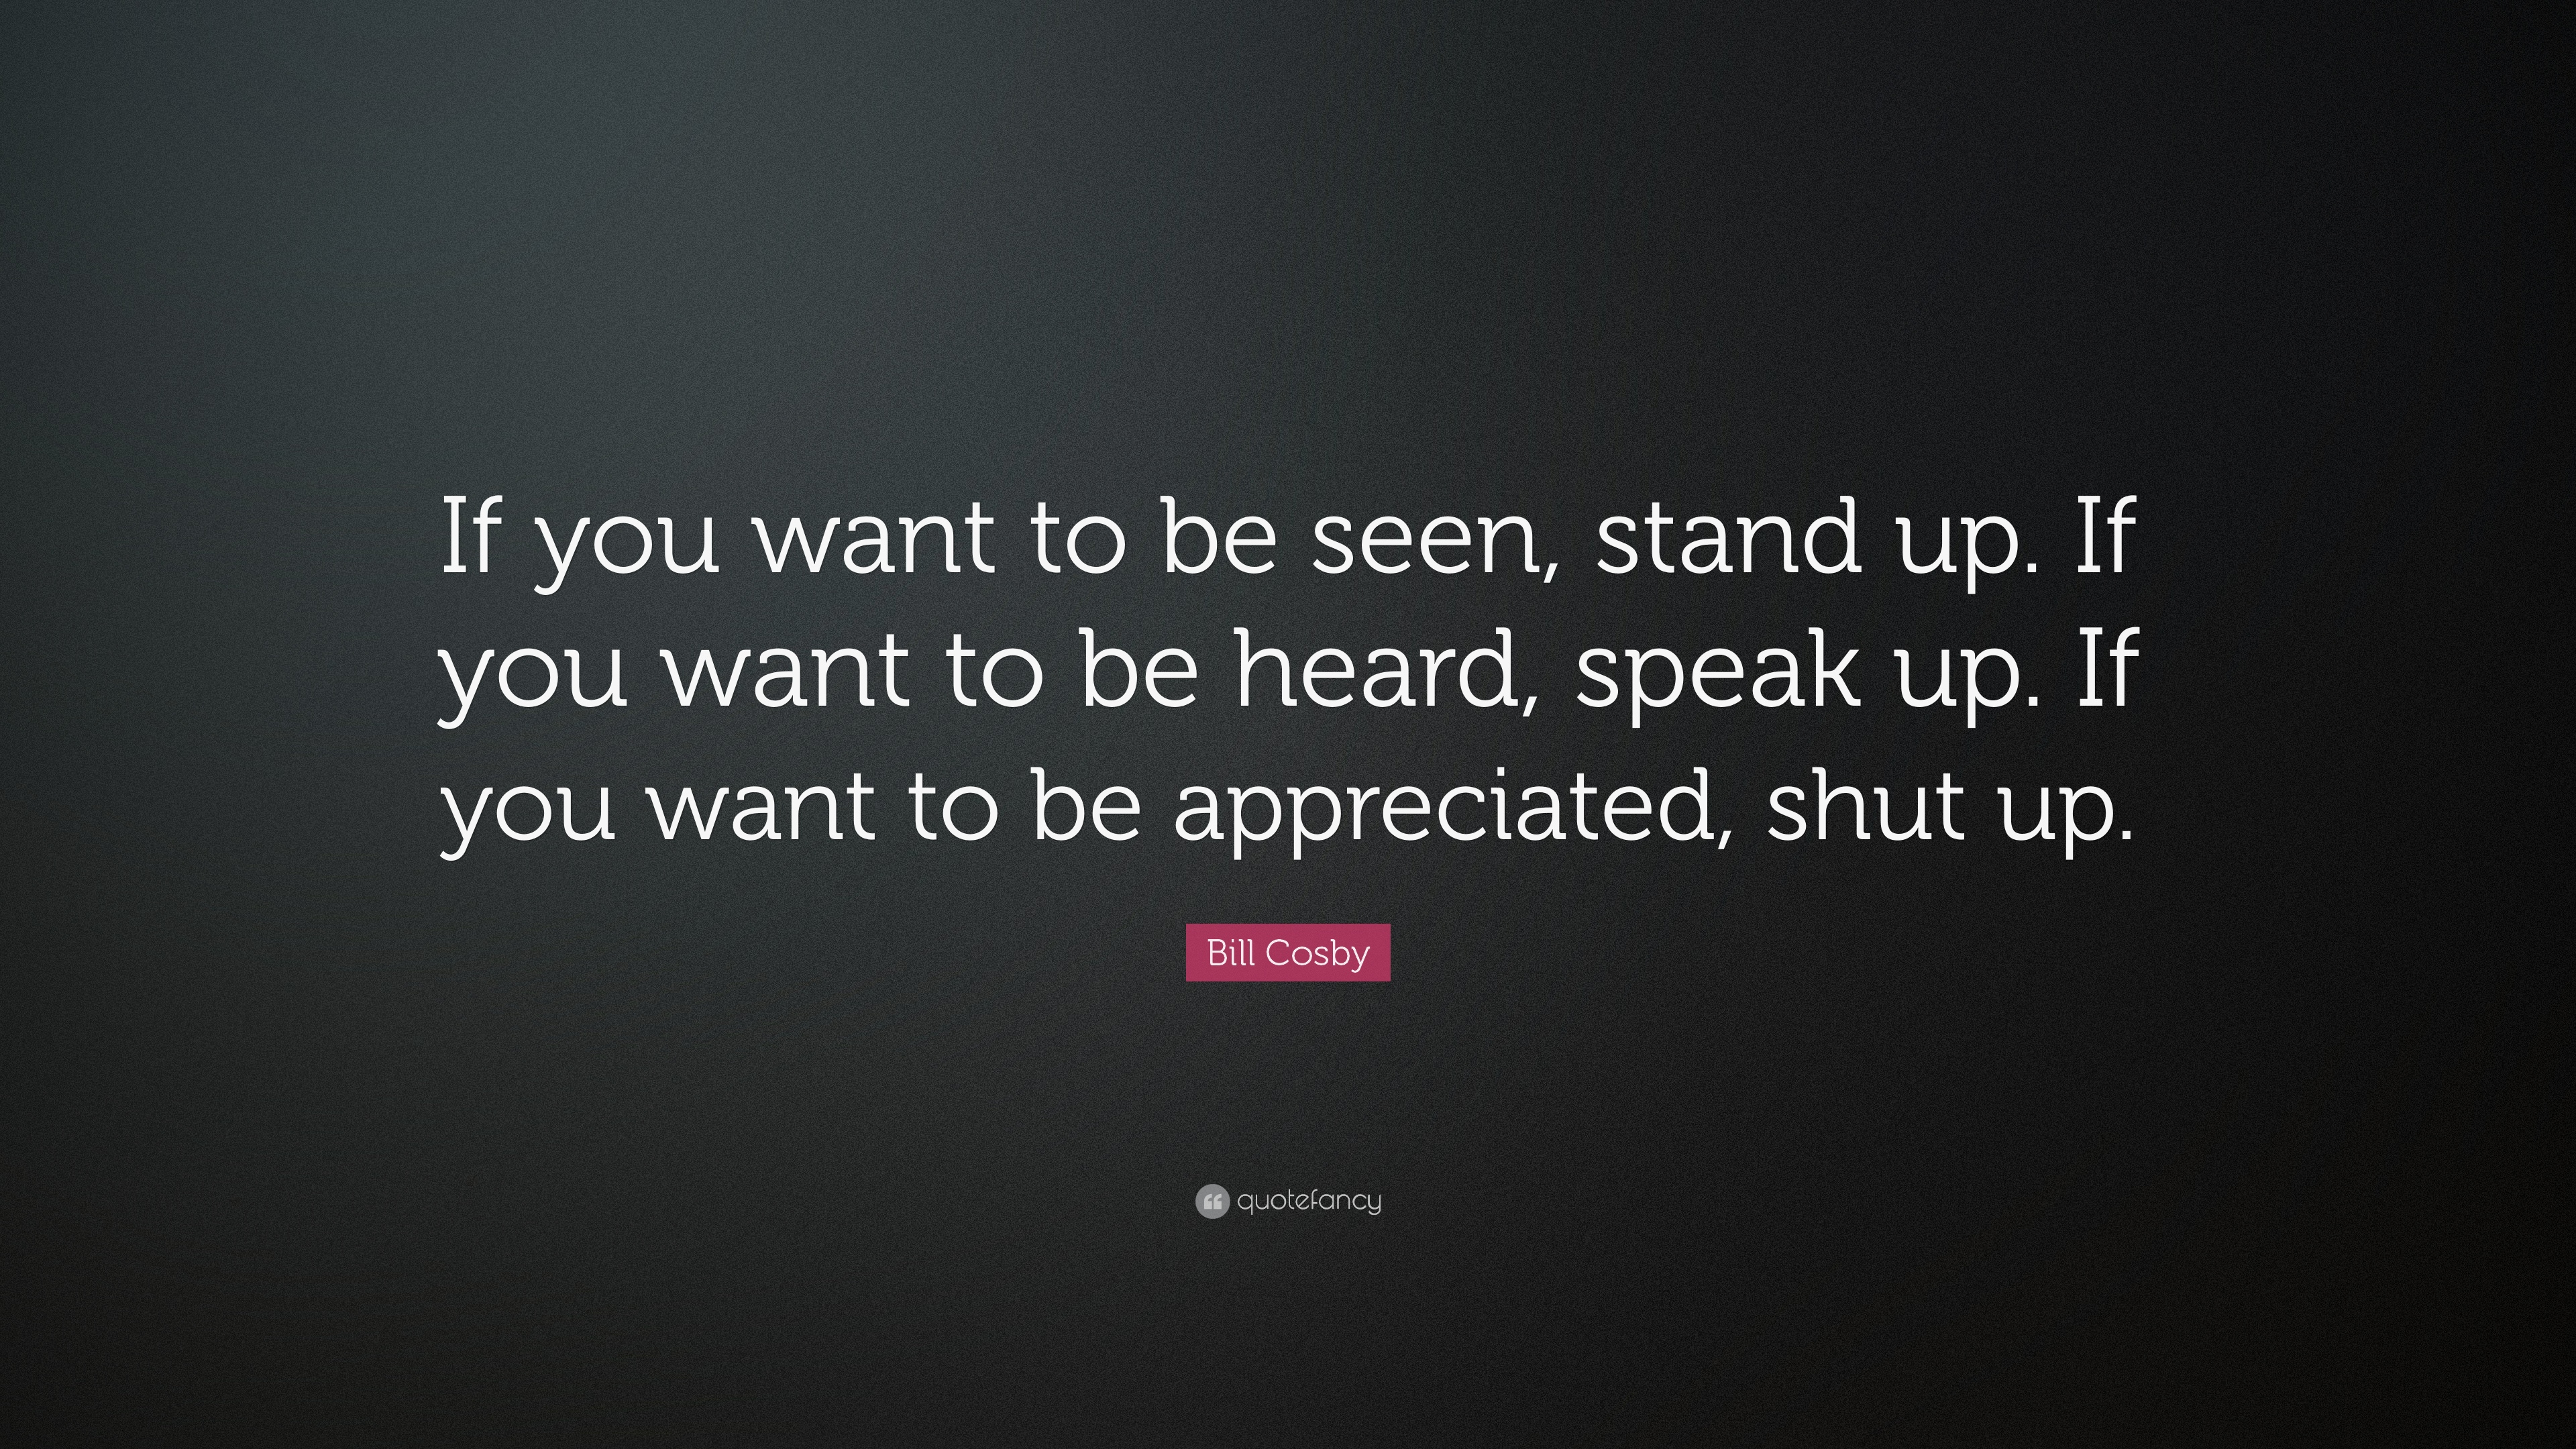 Bill Cosby Quote If You Want To Be Seen Stand Up If You Want To